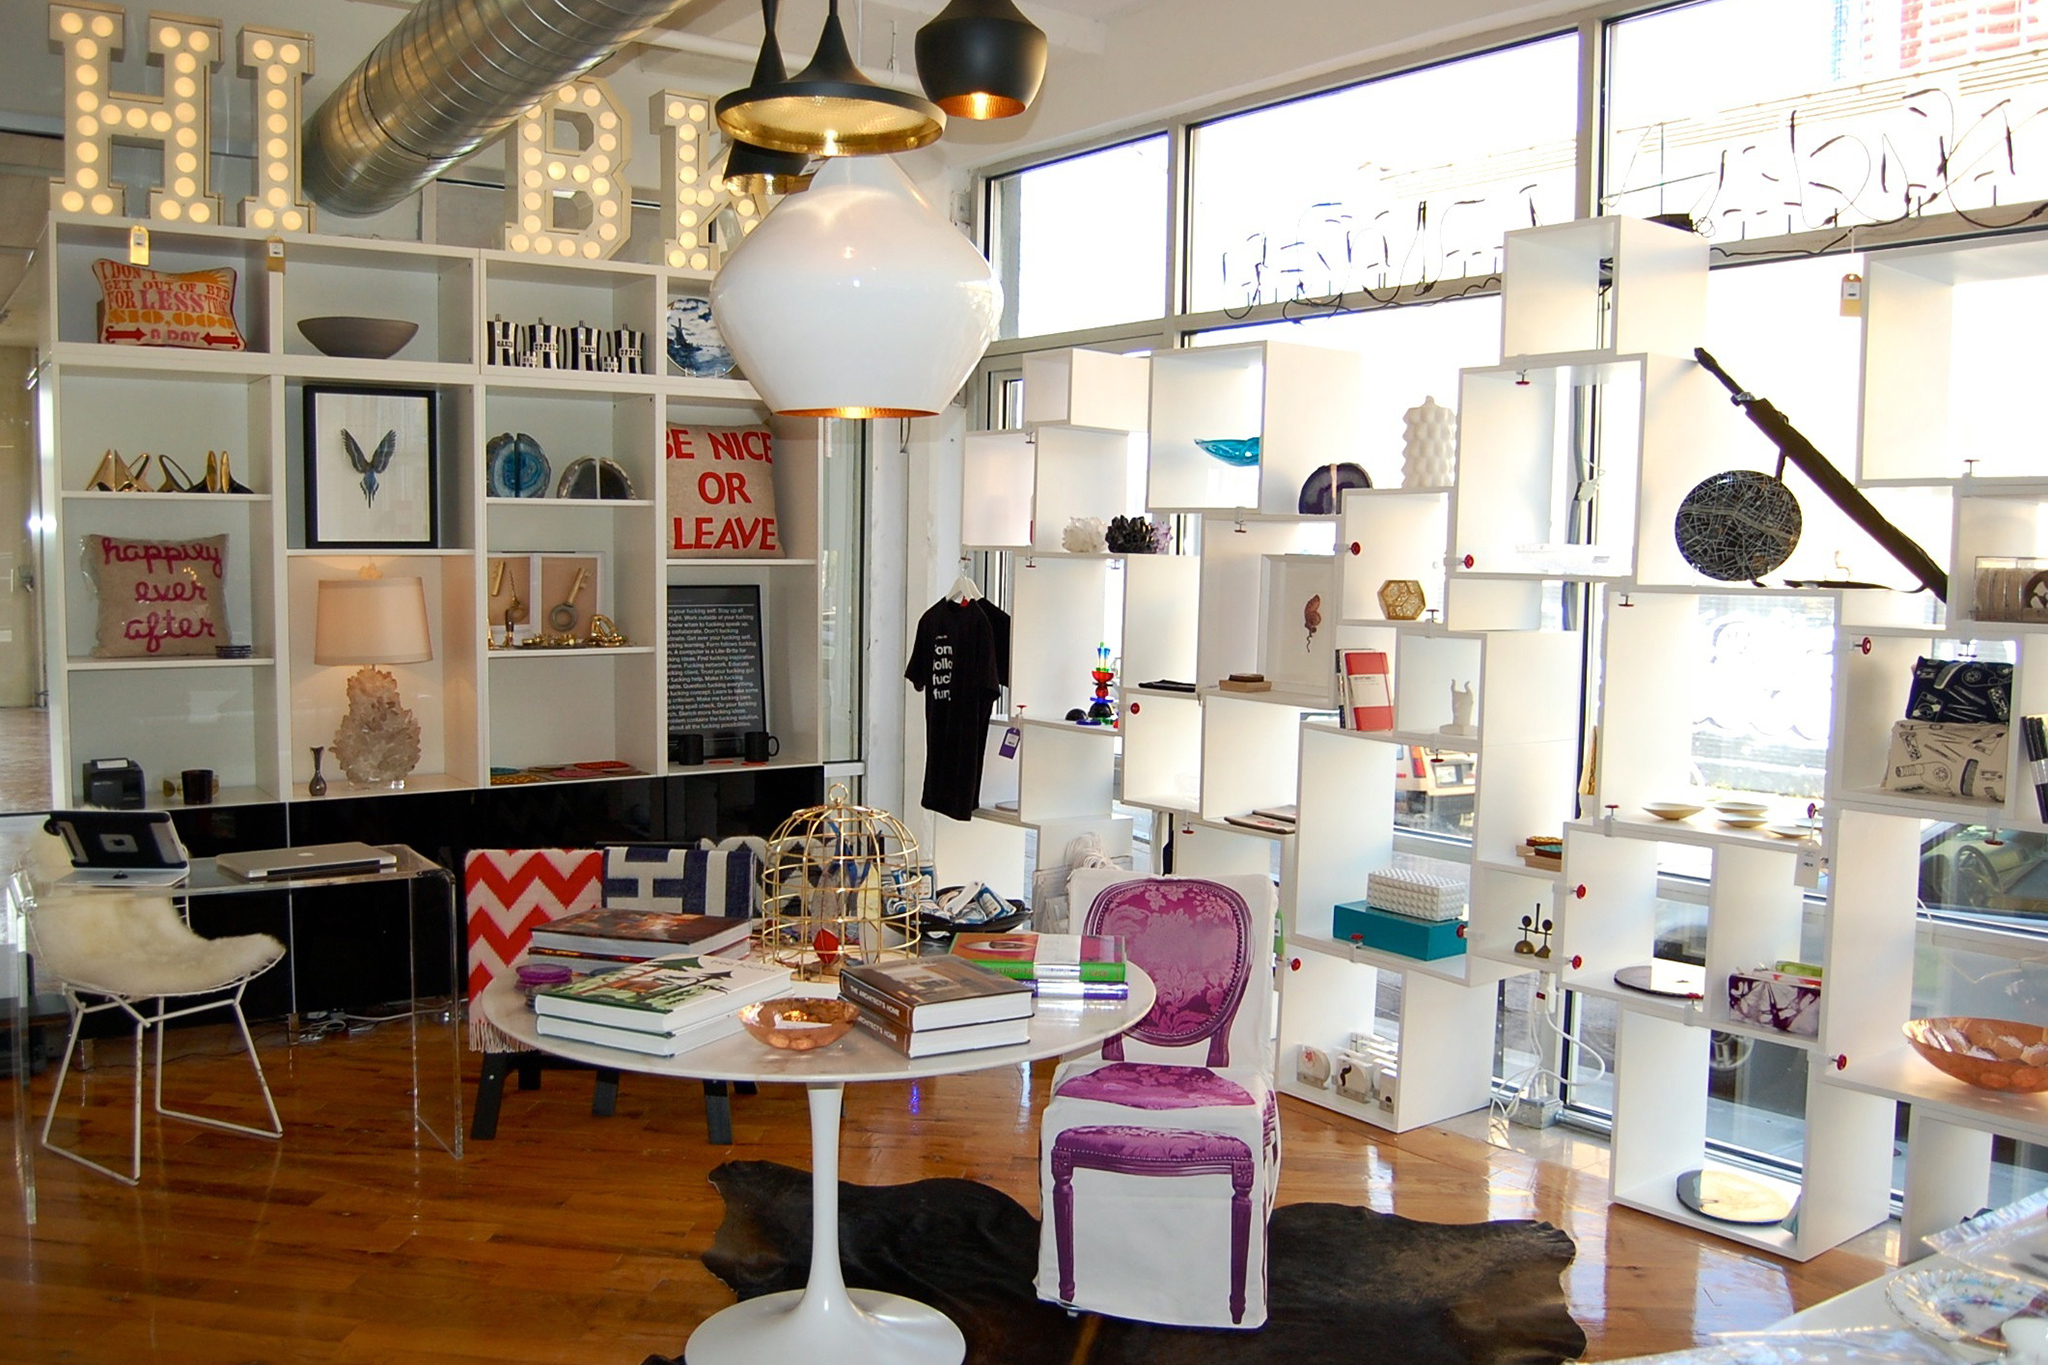 Home decor stores in nyc for decorating ideas and home for High end thrift stores nyc